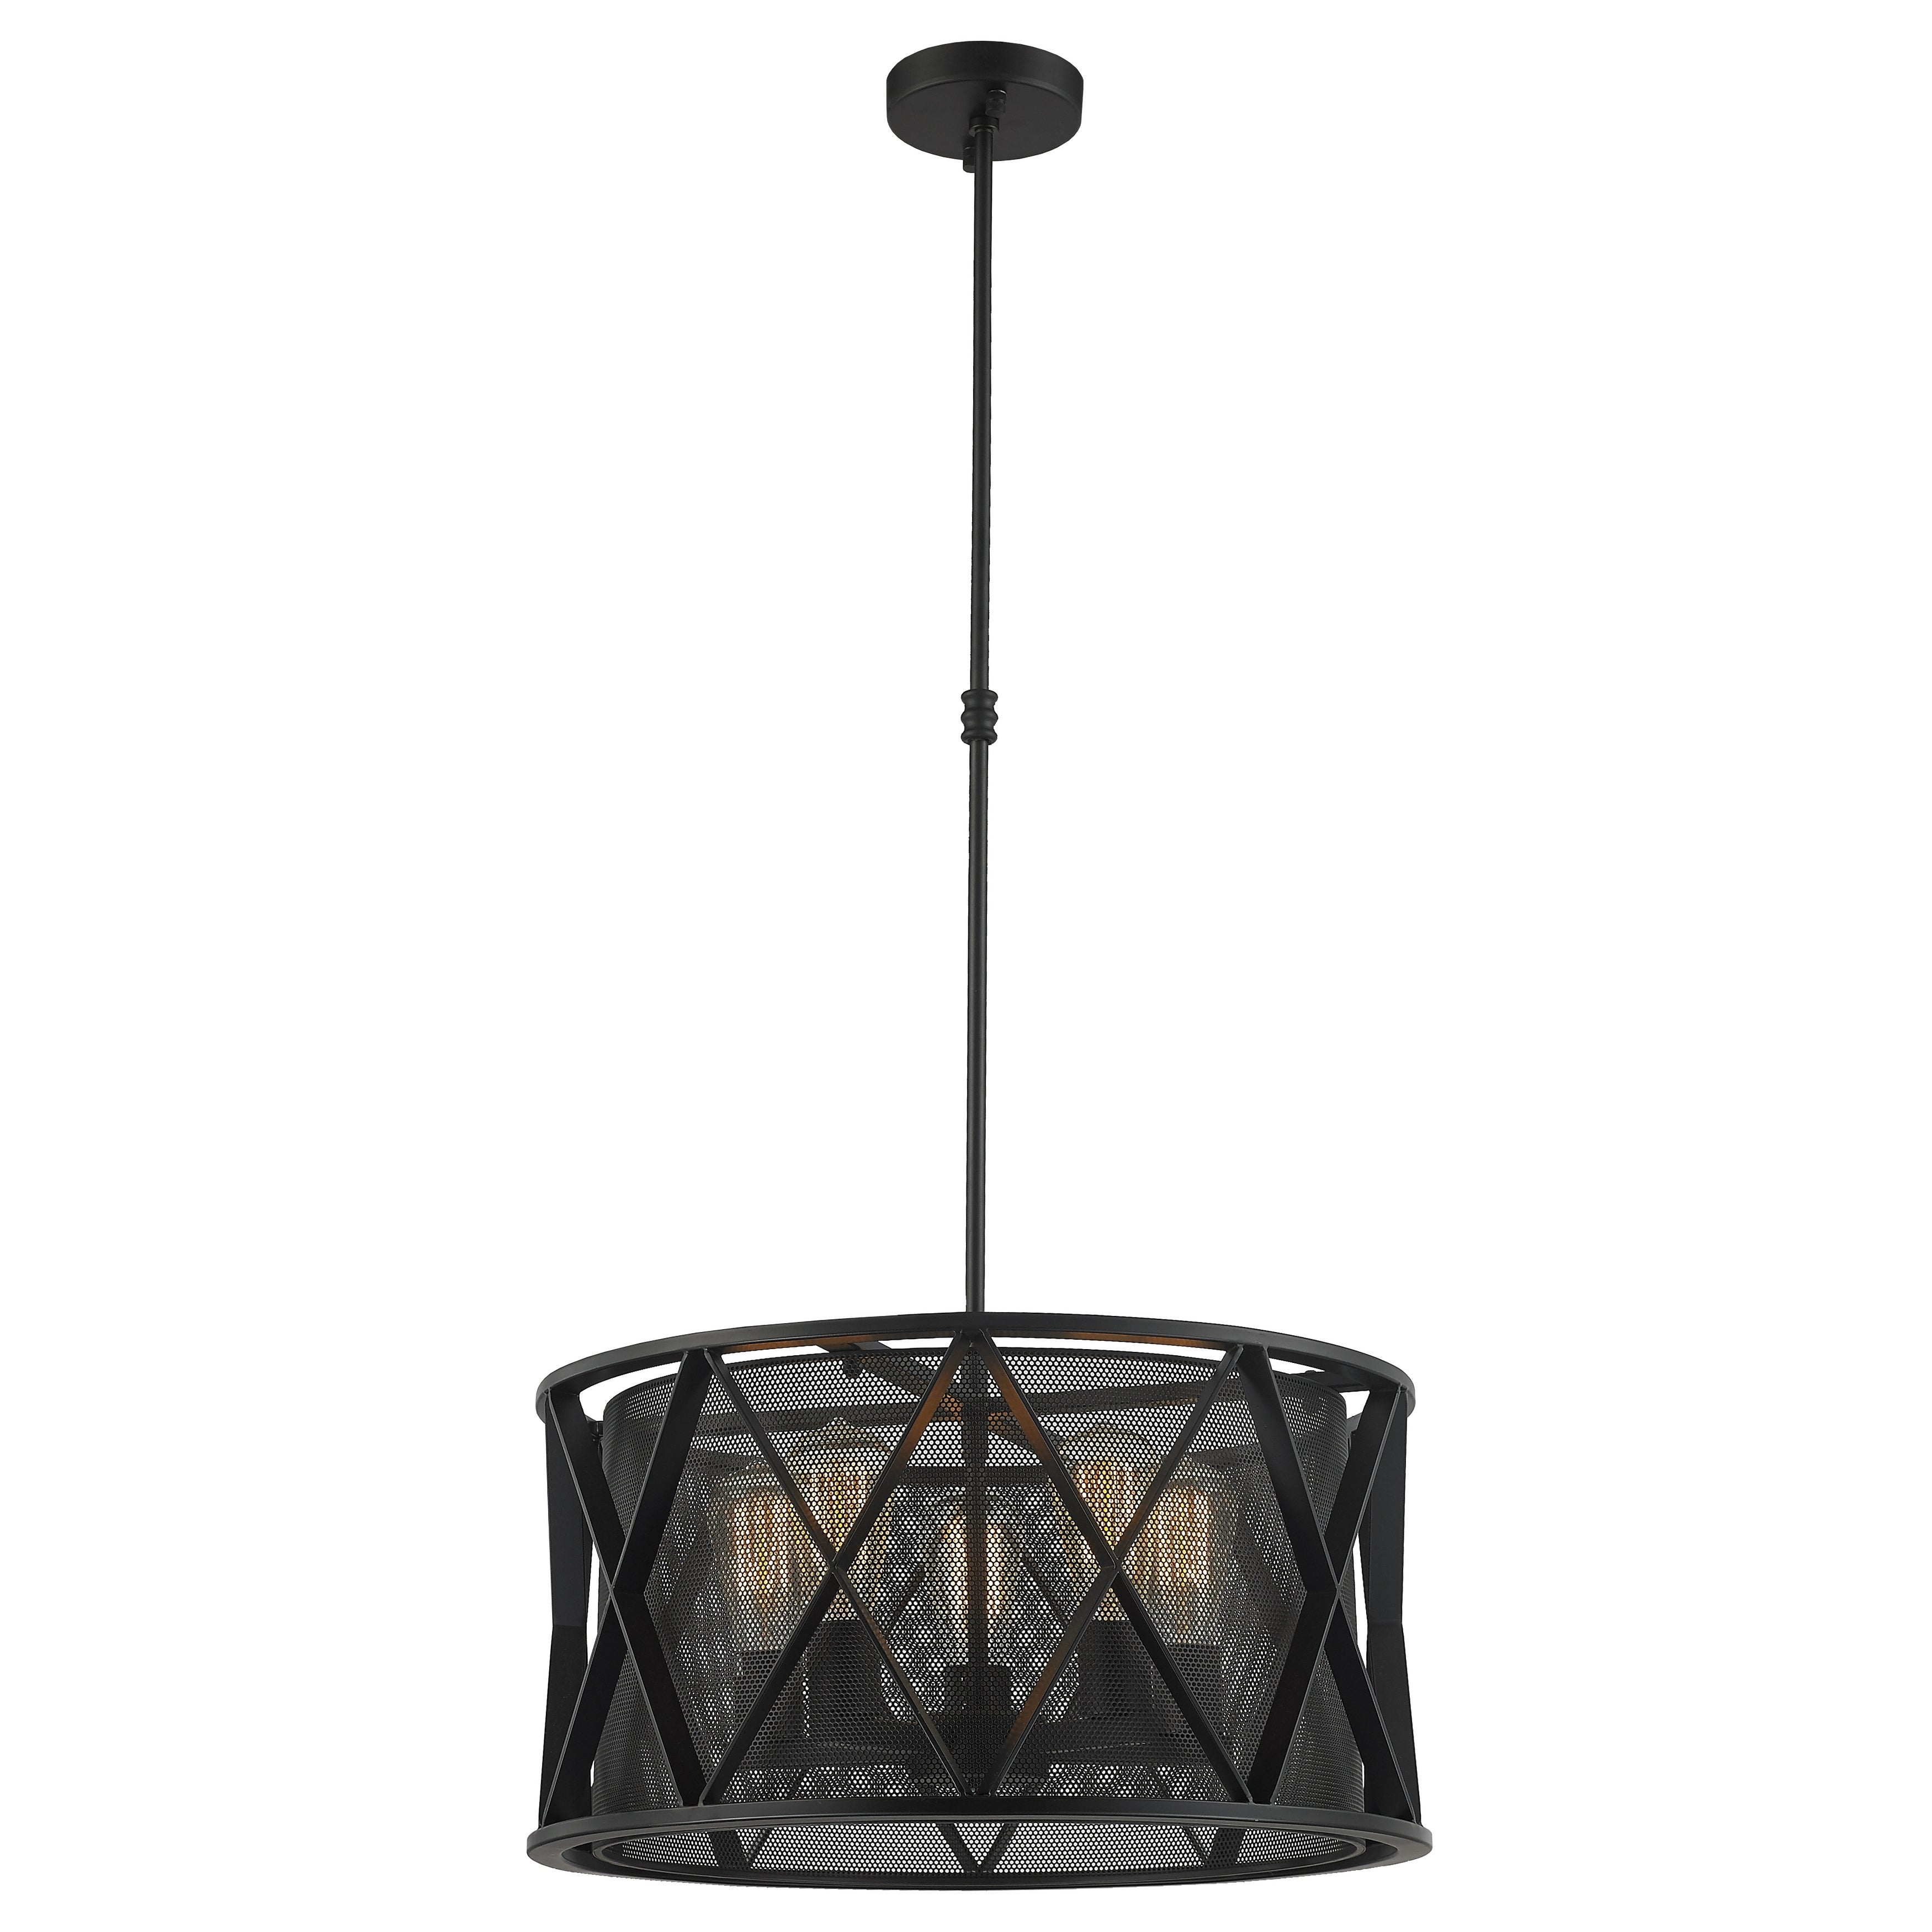 Taiko Collection 5 Light Mesh Drum Shade Pendant Light in Matte ...